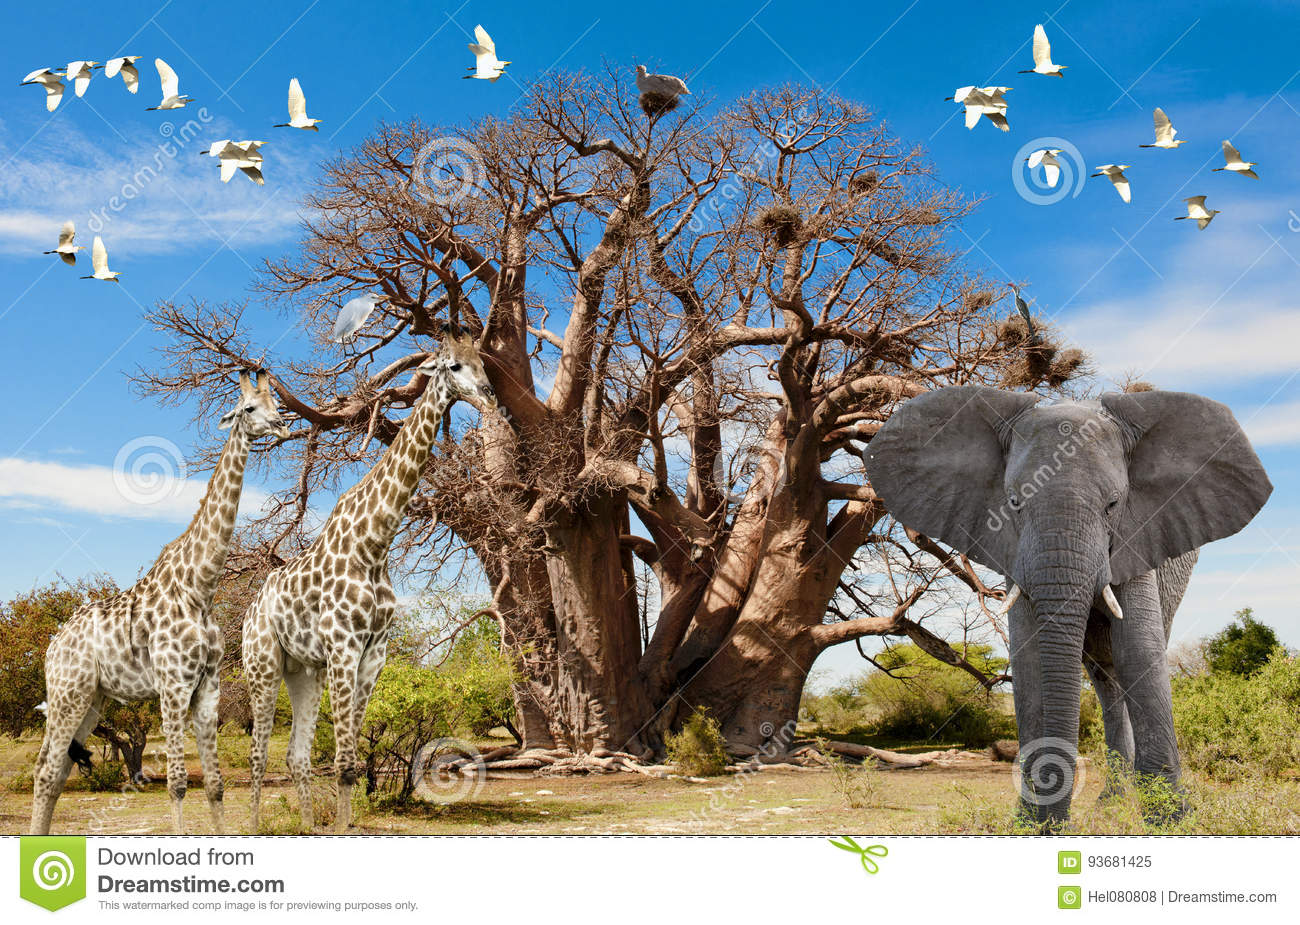 Animals of Africa, Baobab Tree, Illustration with Giraffes, Elephant and Birds with Baobab Tree